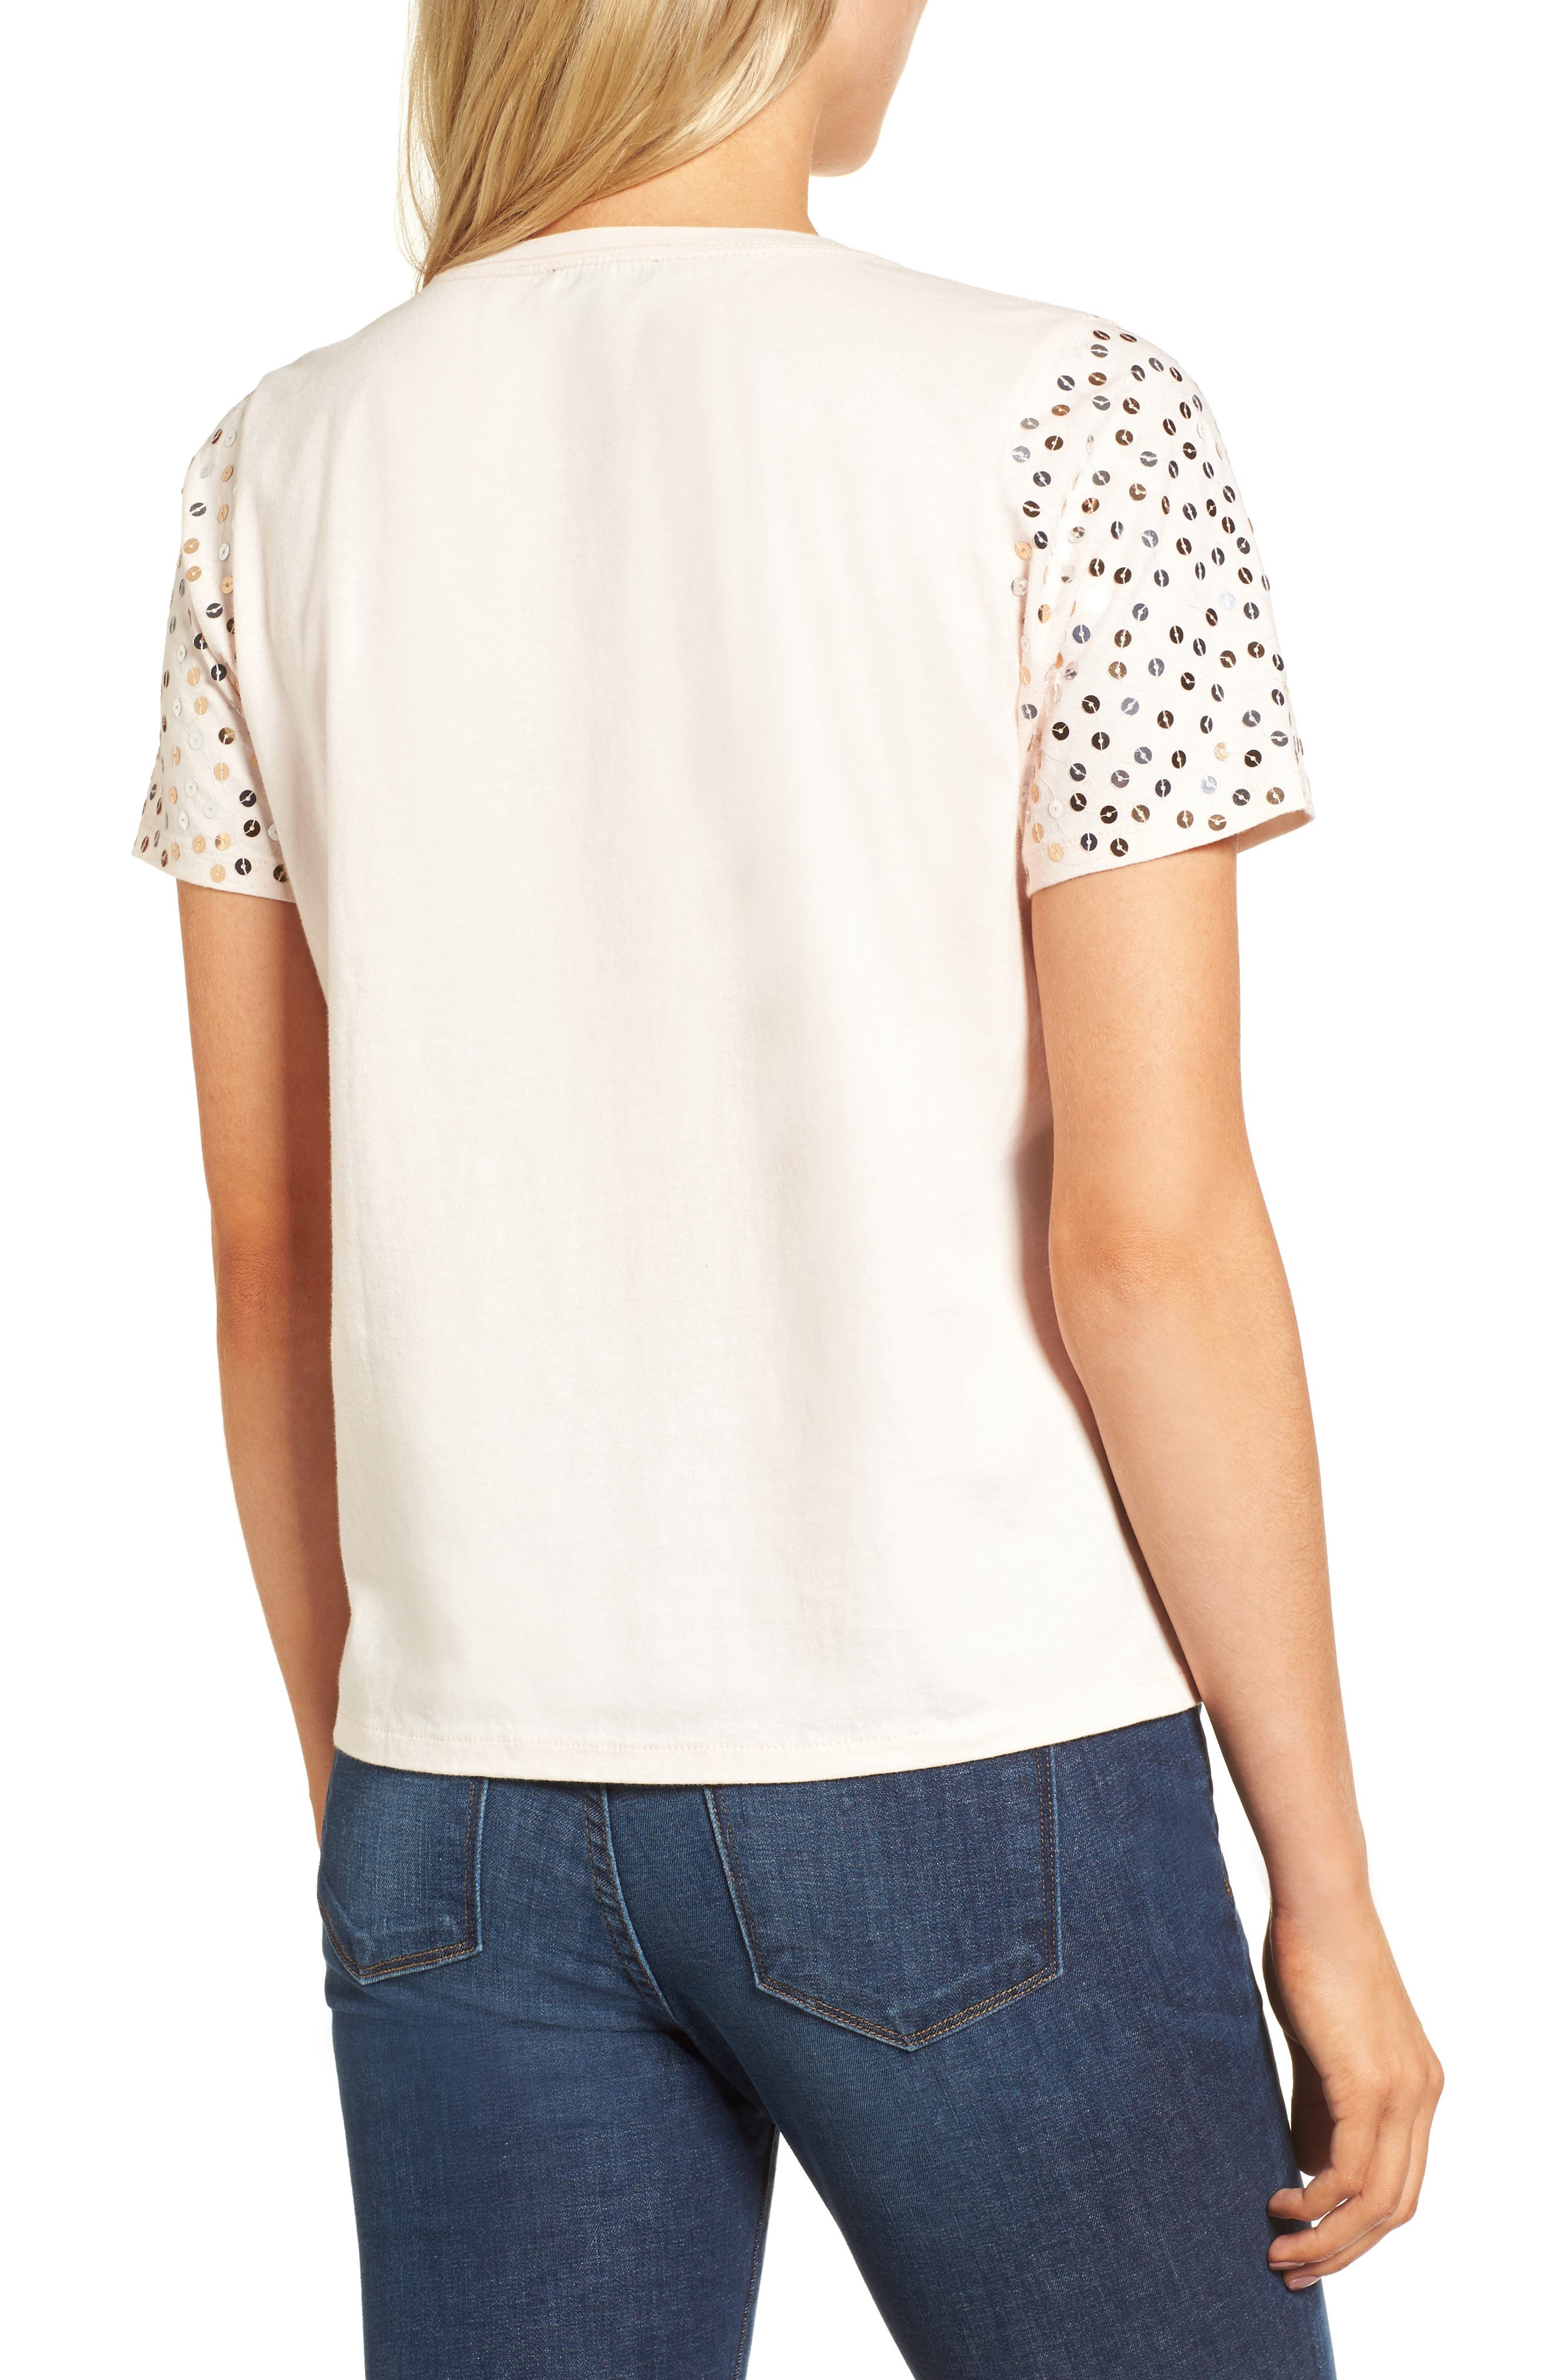 Alternate Image 2  - J.Crew Metallic Sequin Tee